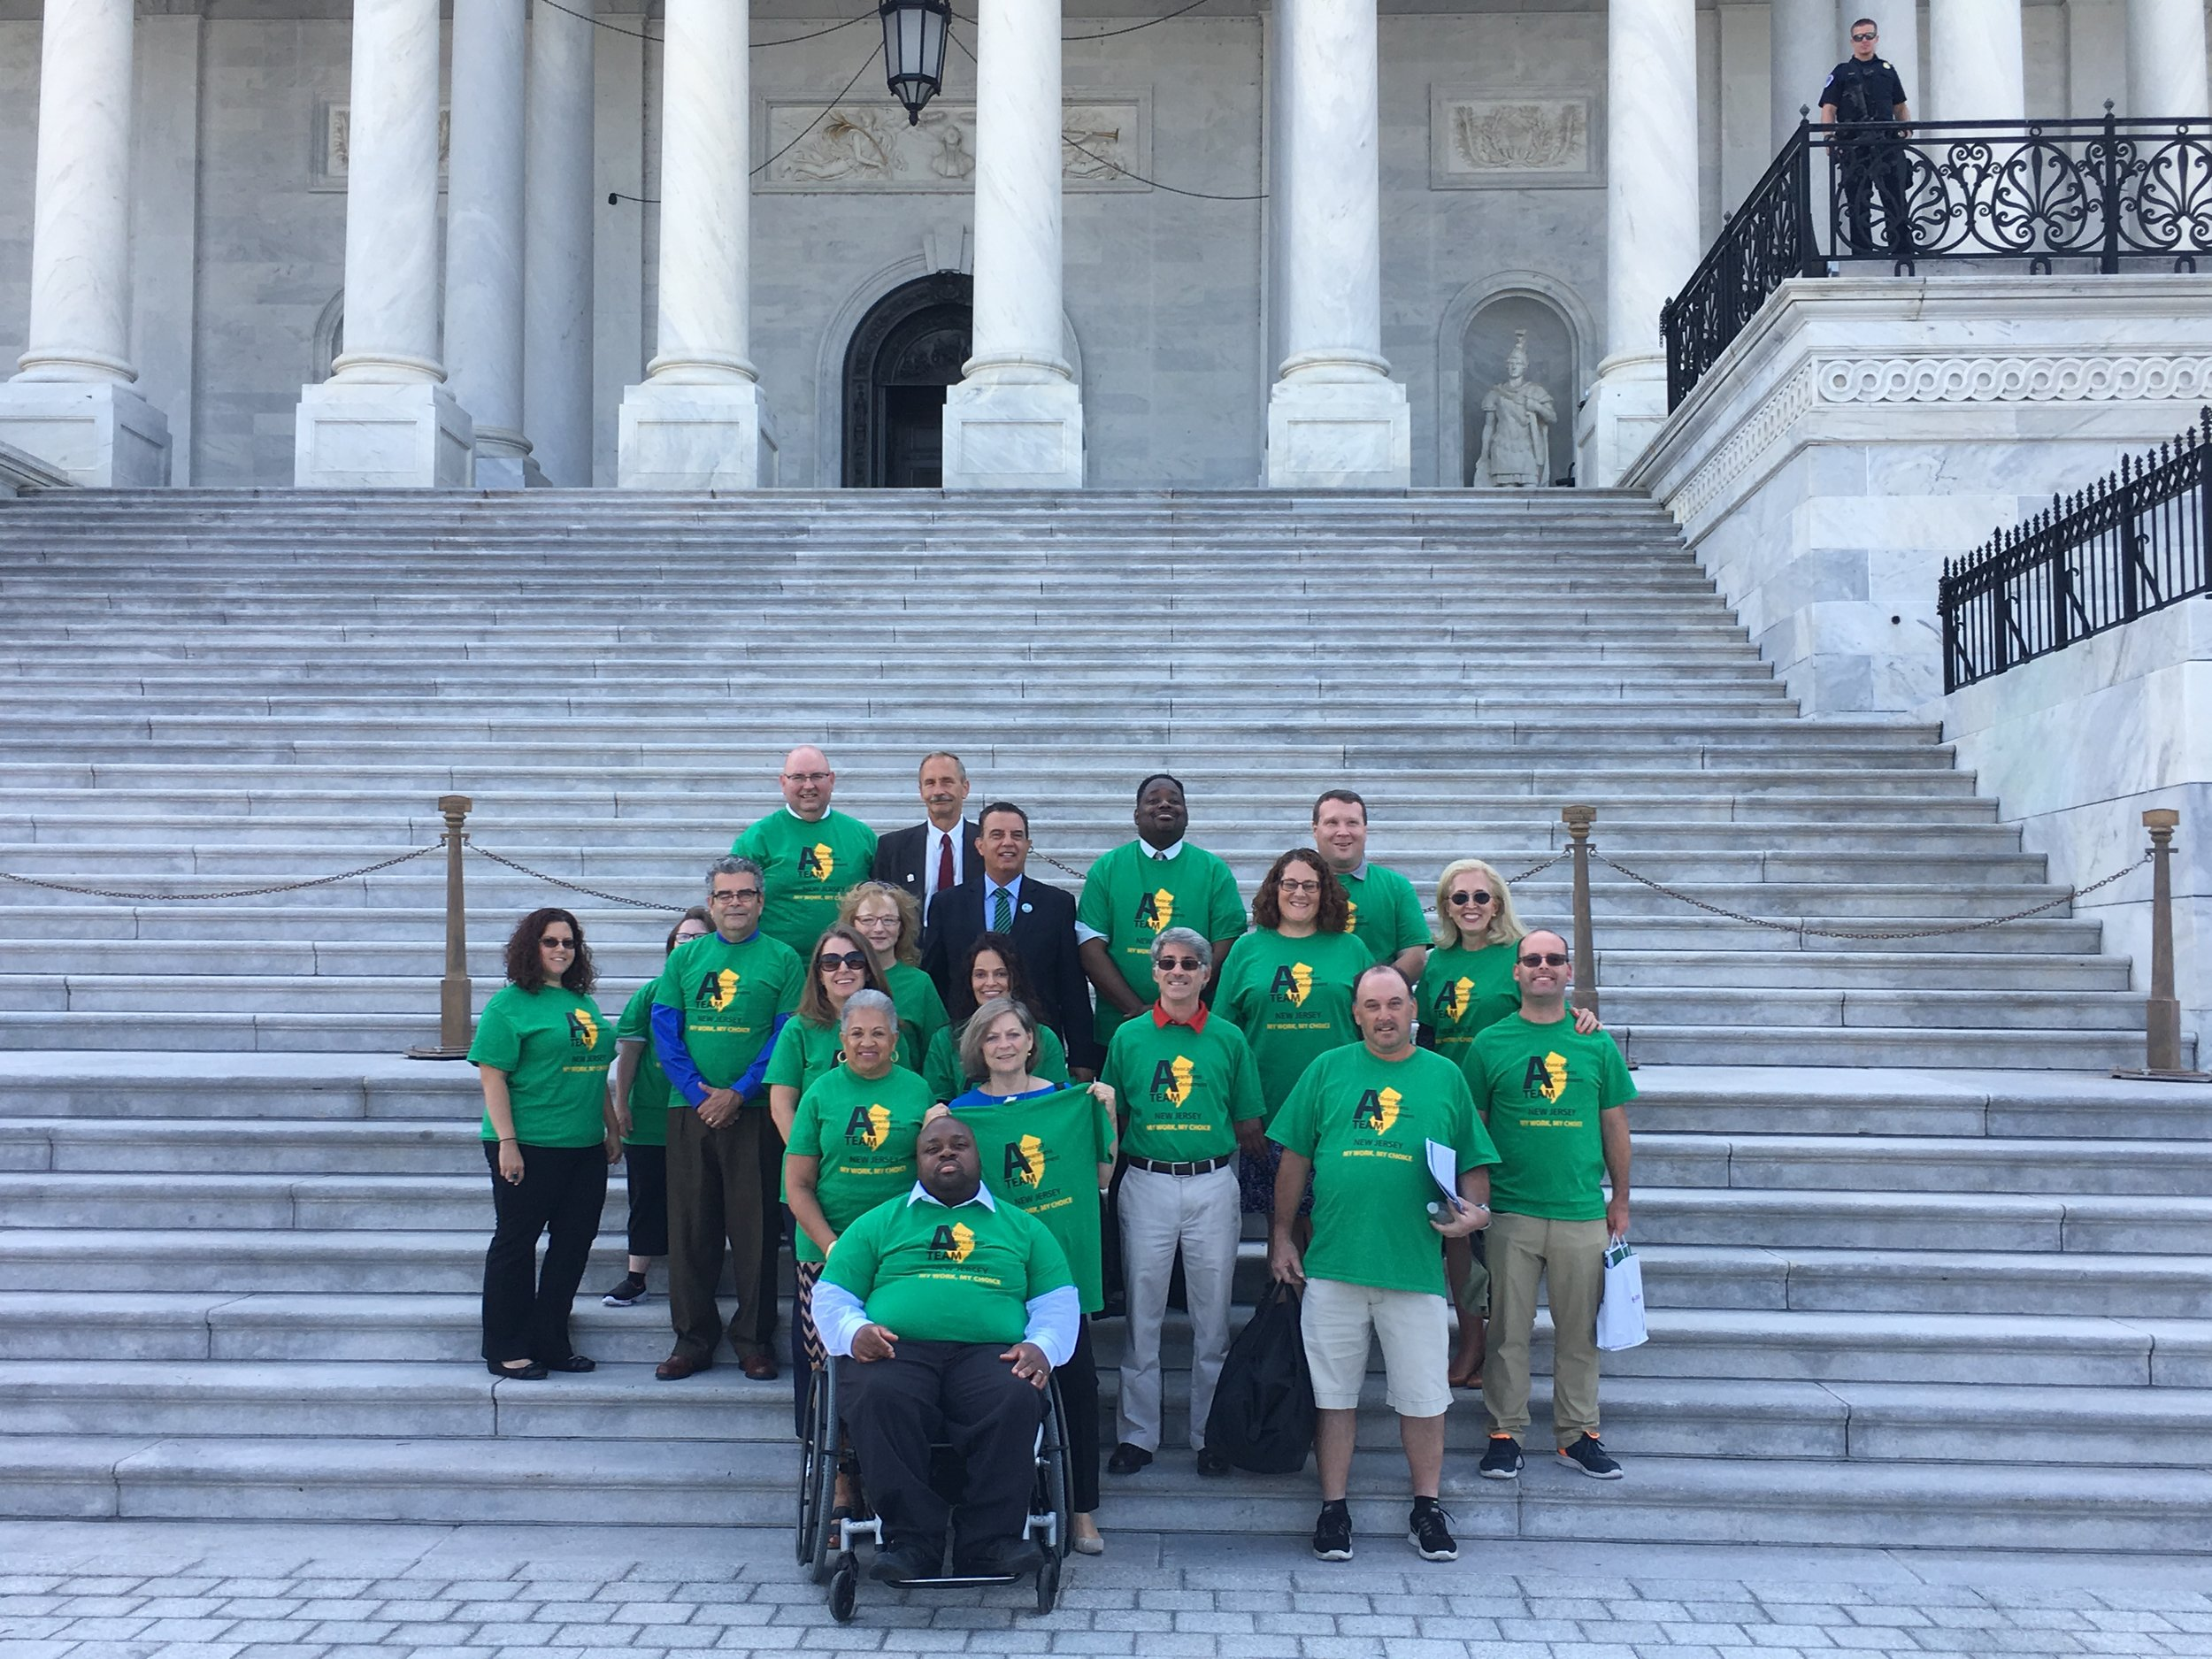 A-Team New Jersey advocates for disability rights in Washington D.C. in April 2019.